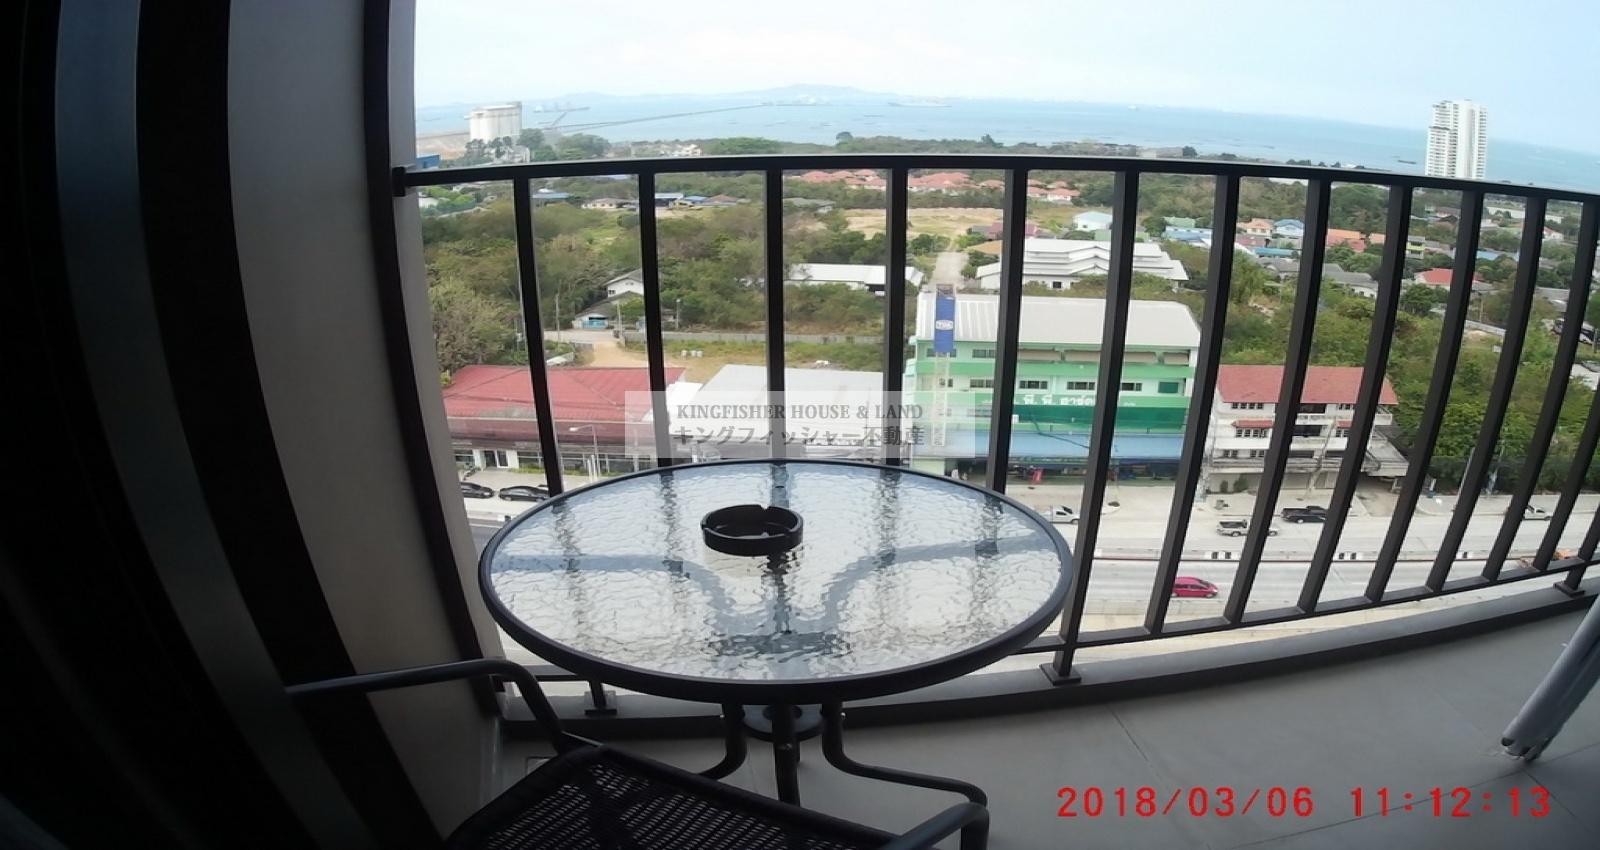 1 Bedrooms, Condominium, For Rent, 1 Bathrooms, Listing ID 1215, Sriracha, Thailand, 20110,